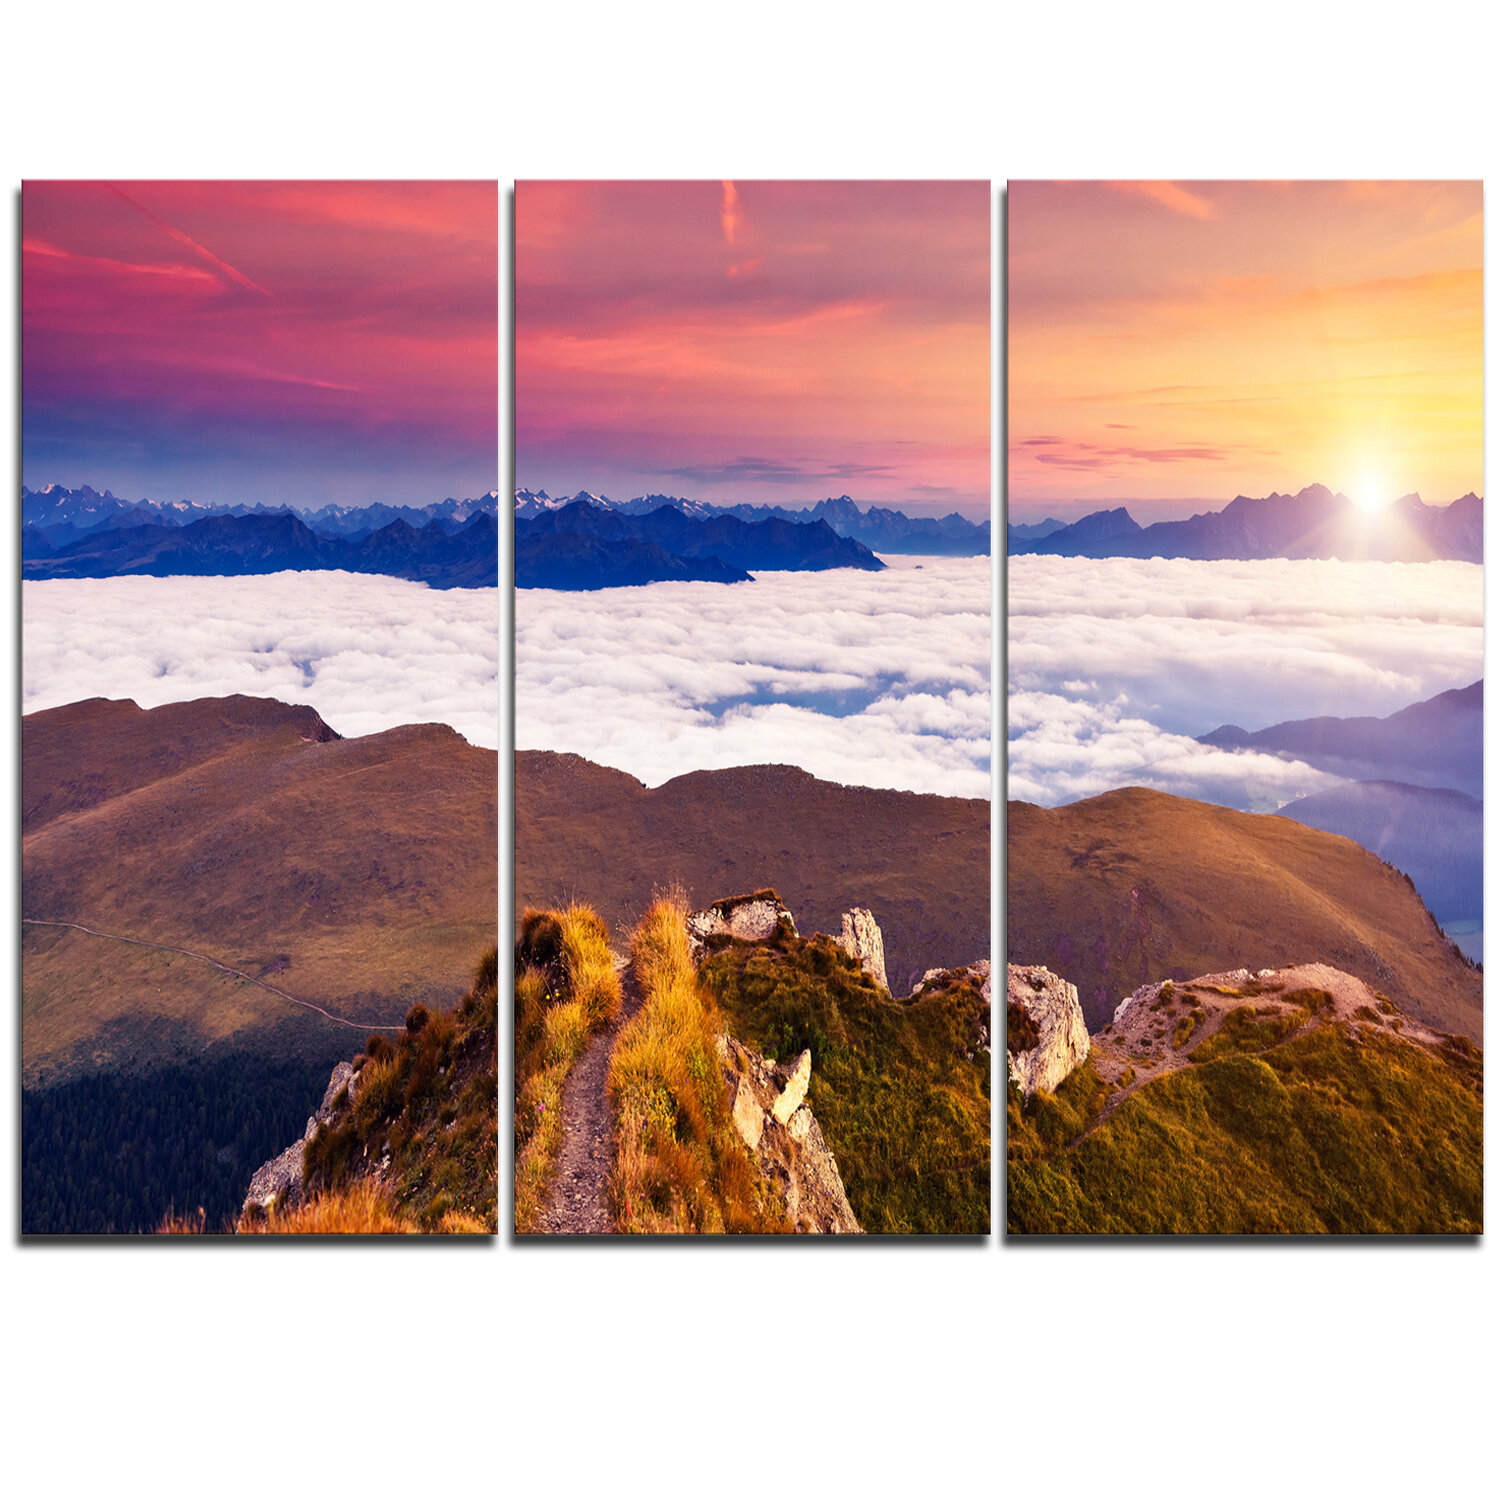 Designart Foggy Val Gardena Valley Panorama 3 Piece Graphic Art On Wrapped Canvas Set Wayfair